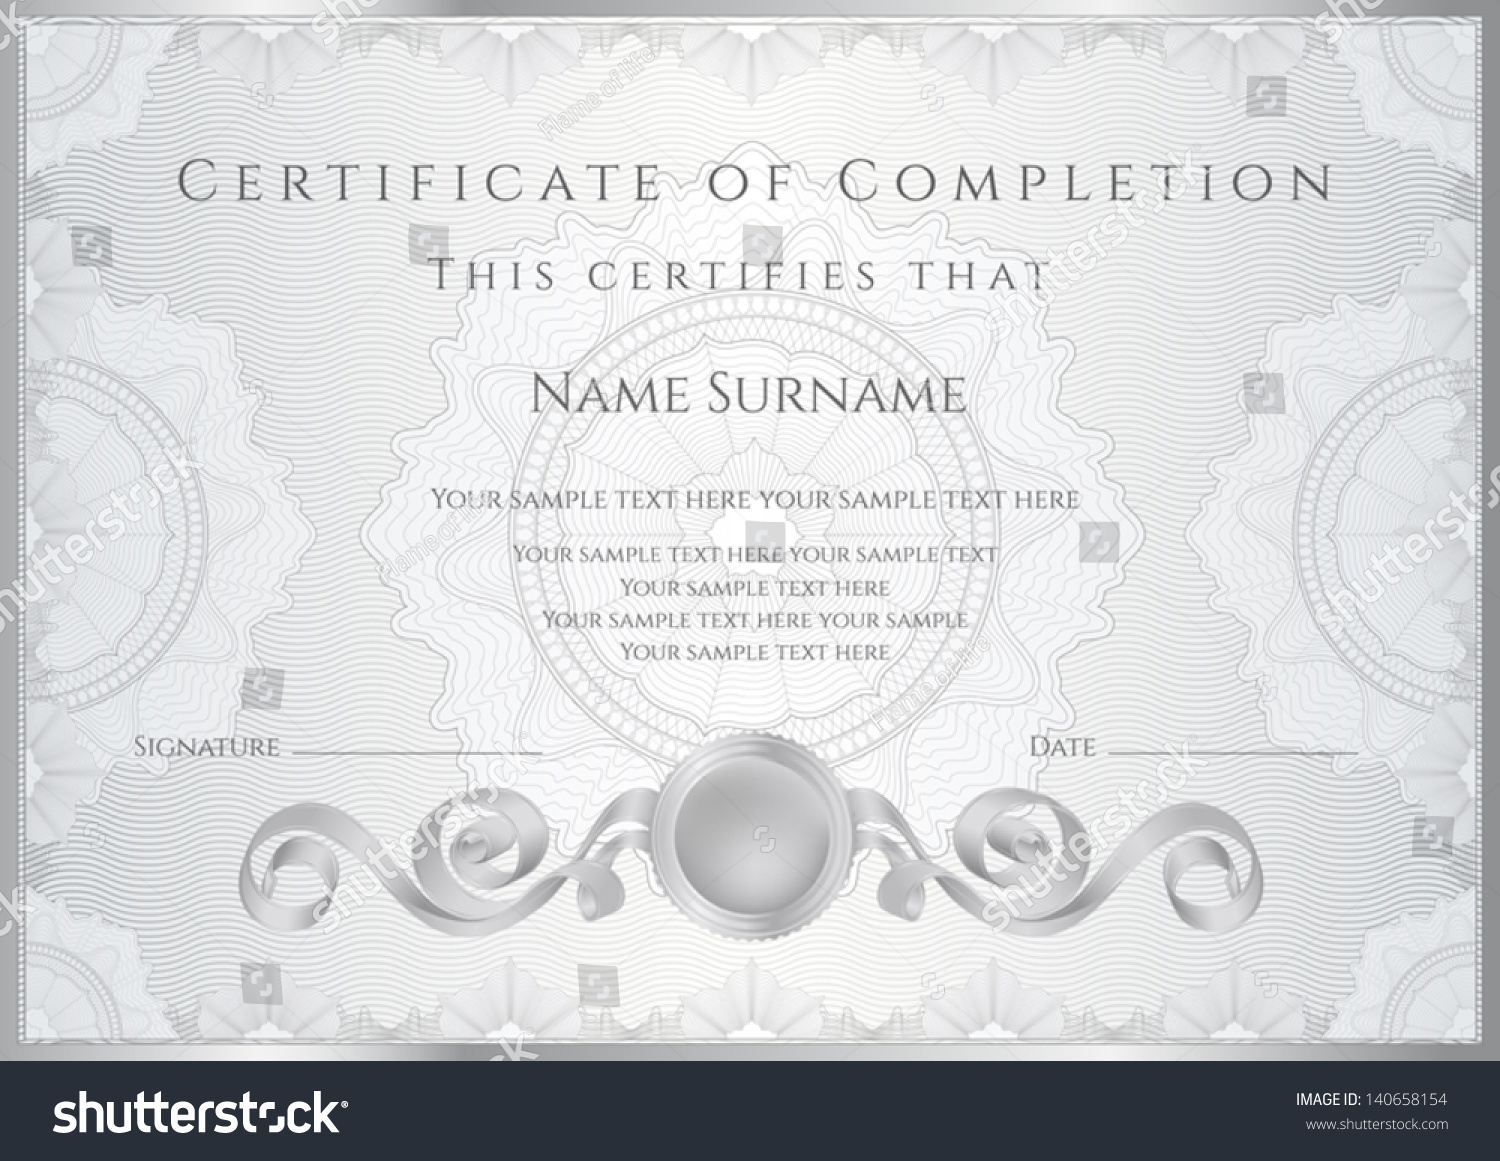 Silver Certificate Diploma Completion Design Template Vector – Samples of Certificate of Completion